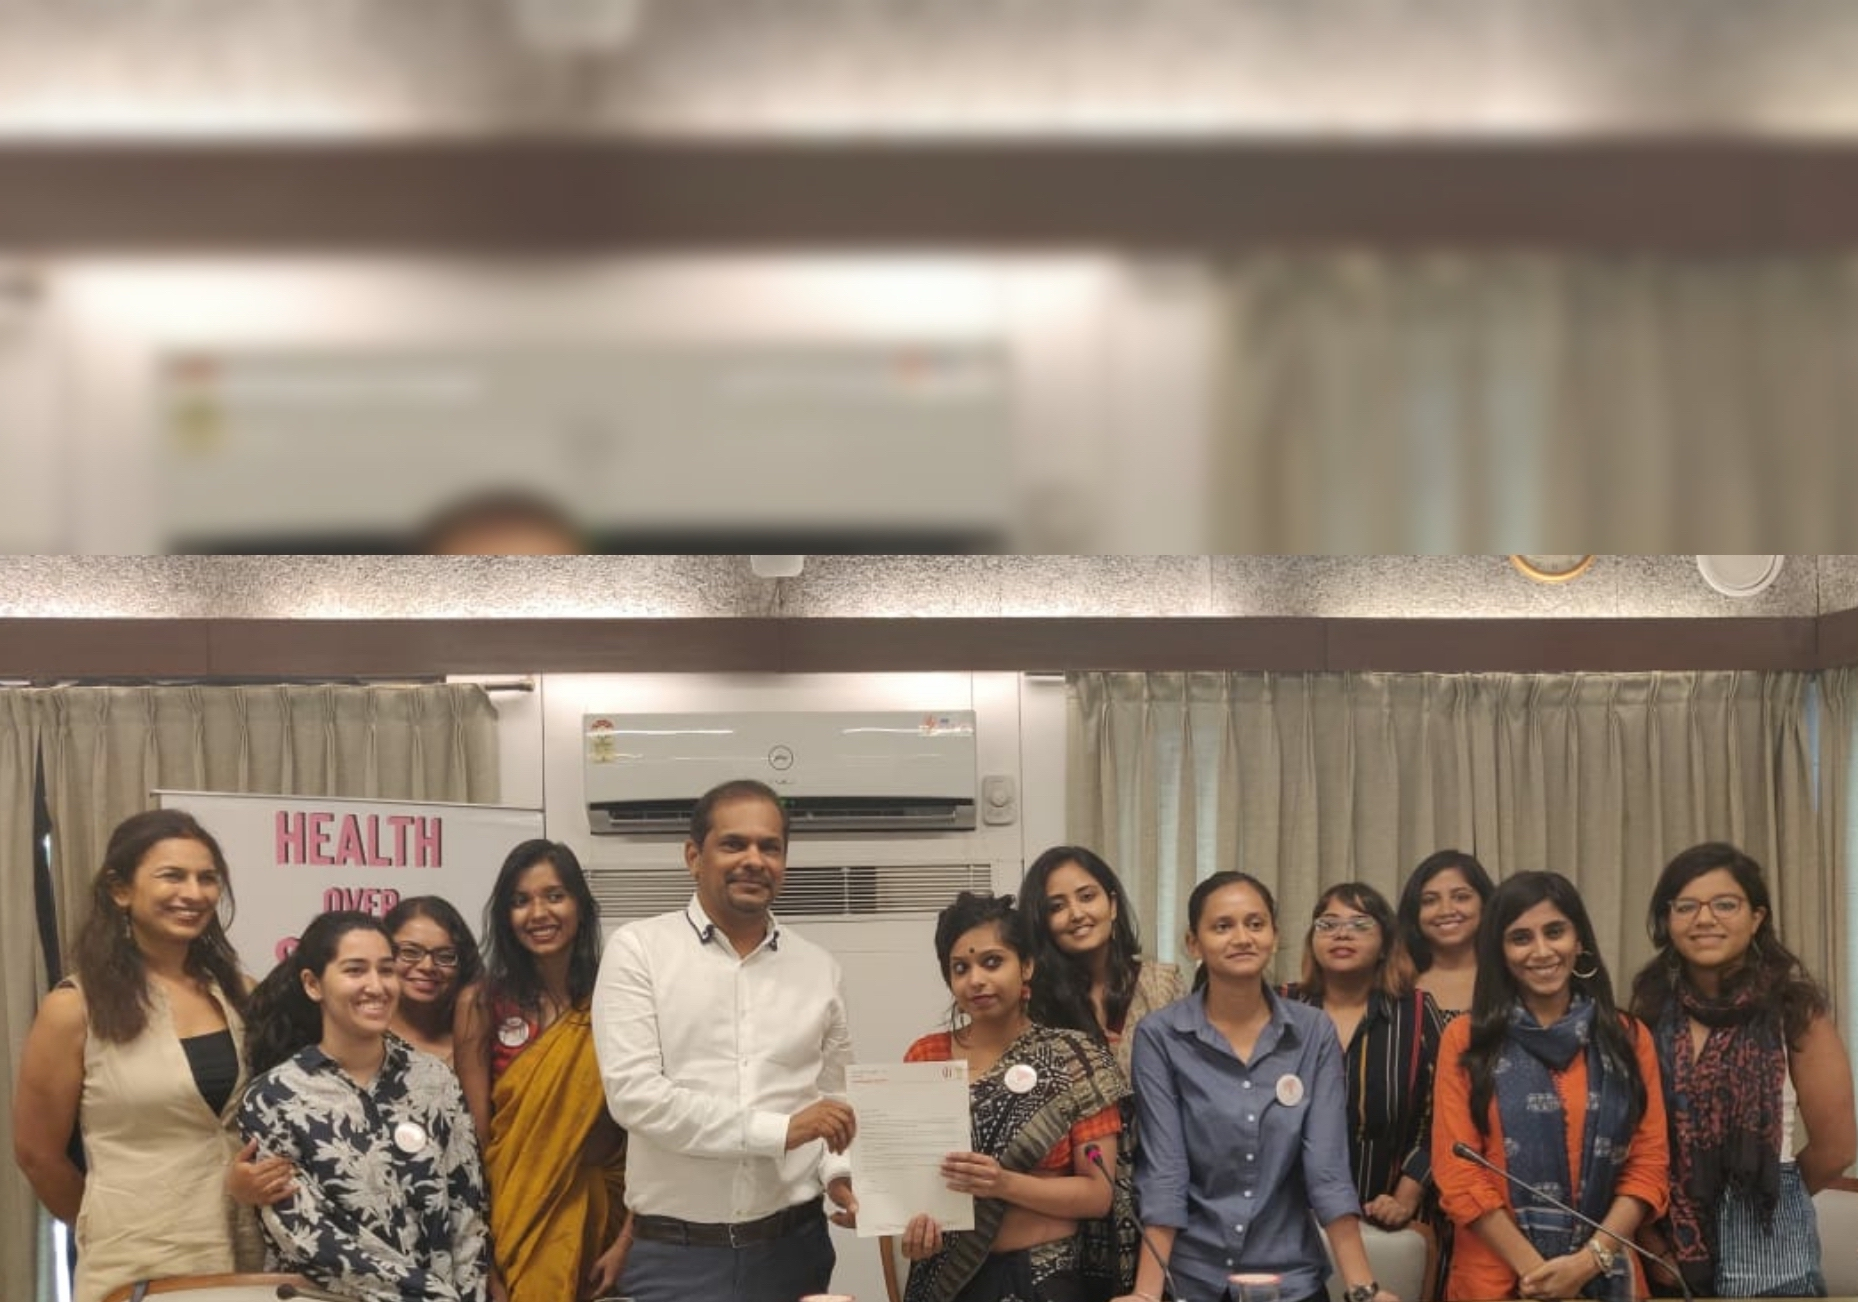 Press Release: DMC, DMA commit to providing non-judgmental SRH services to unmarried women